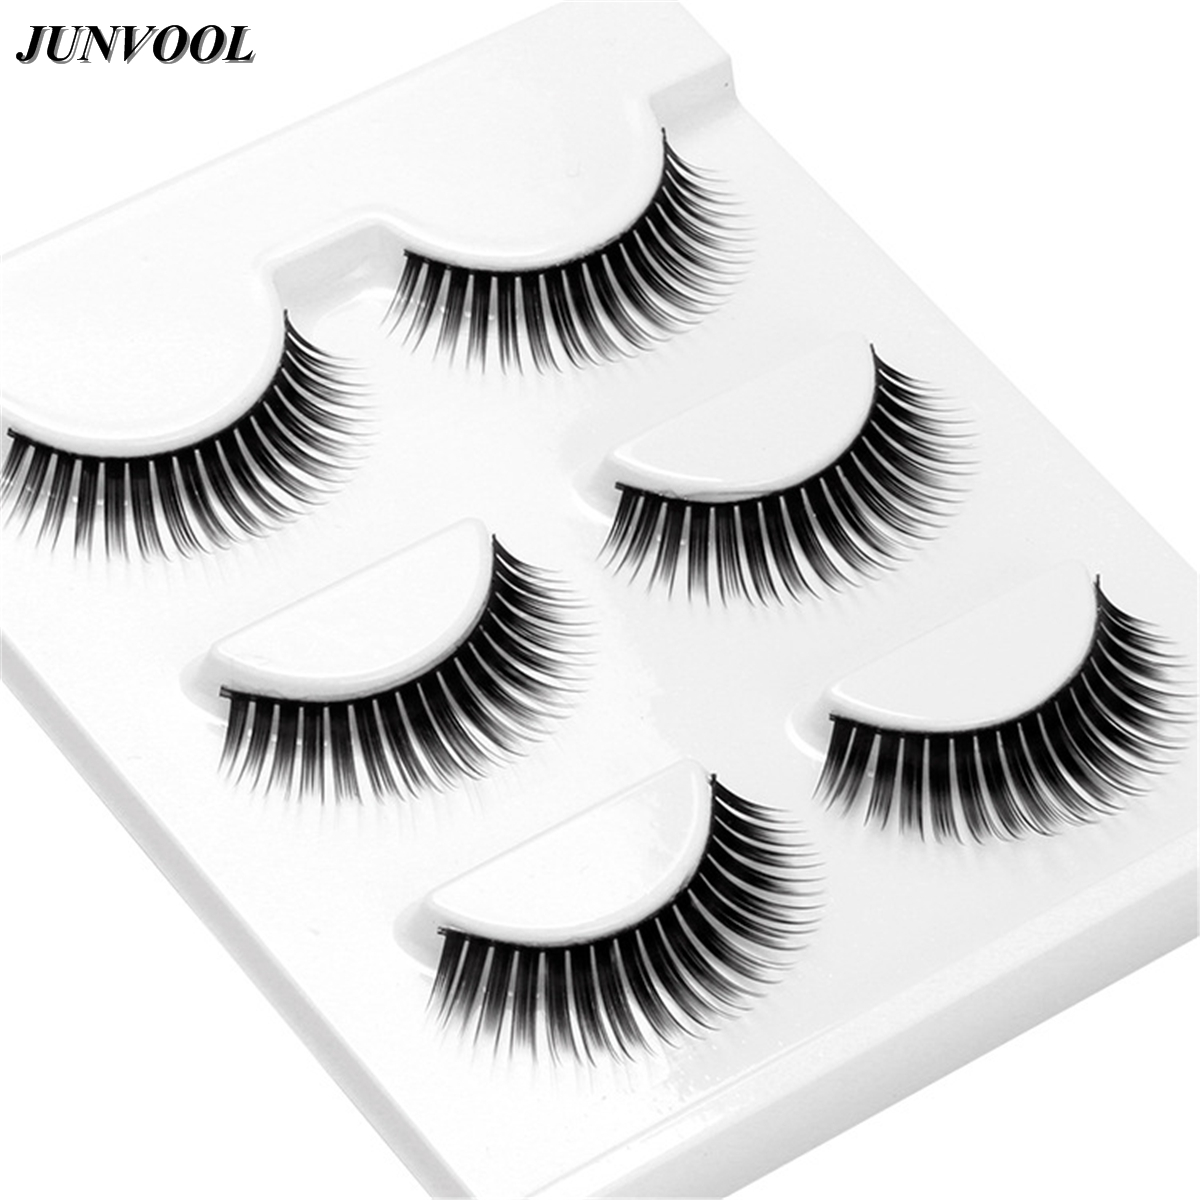 Makeup False Eyelashes 15 Pairs Natural Make-Up Thick Fake Eye Lashes Thick Black Comfortable Eyelash Sexy False Eye Lash